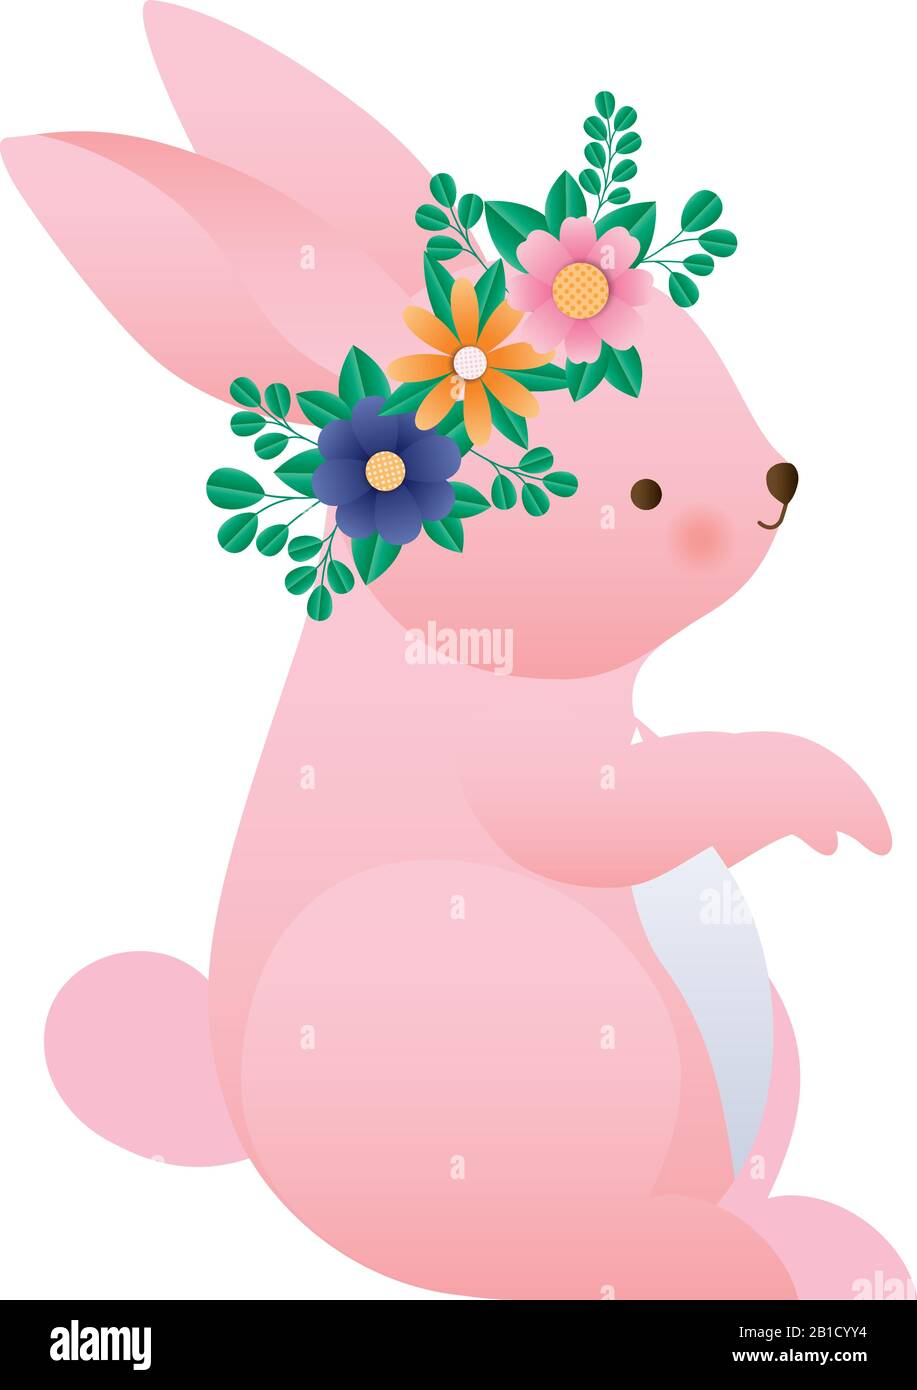 Cute Rabbit Cartoon With Flowers Crown Vector Design Stock Vector Image Art Alamy Download crown cartoon images and photos. alamy